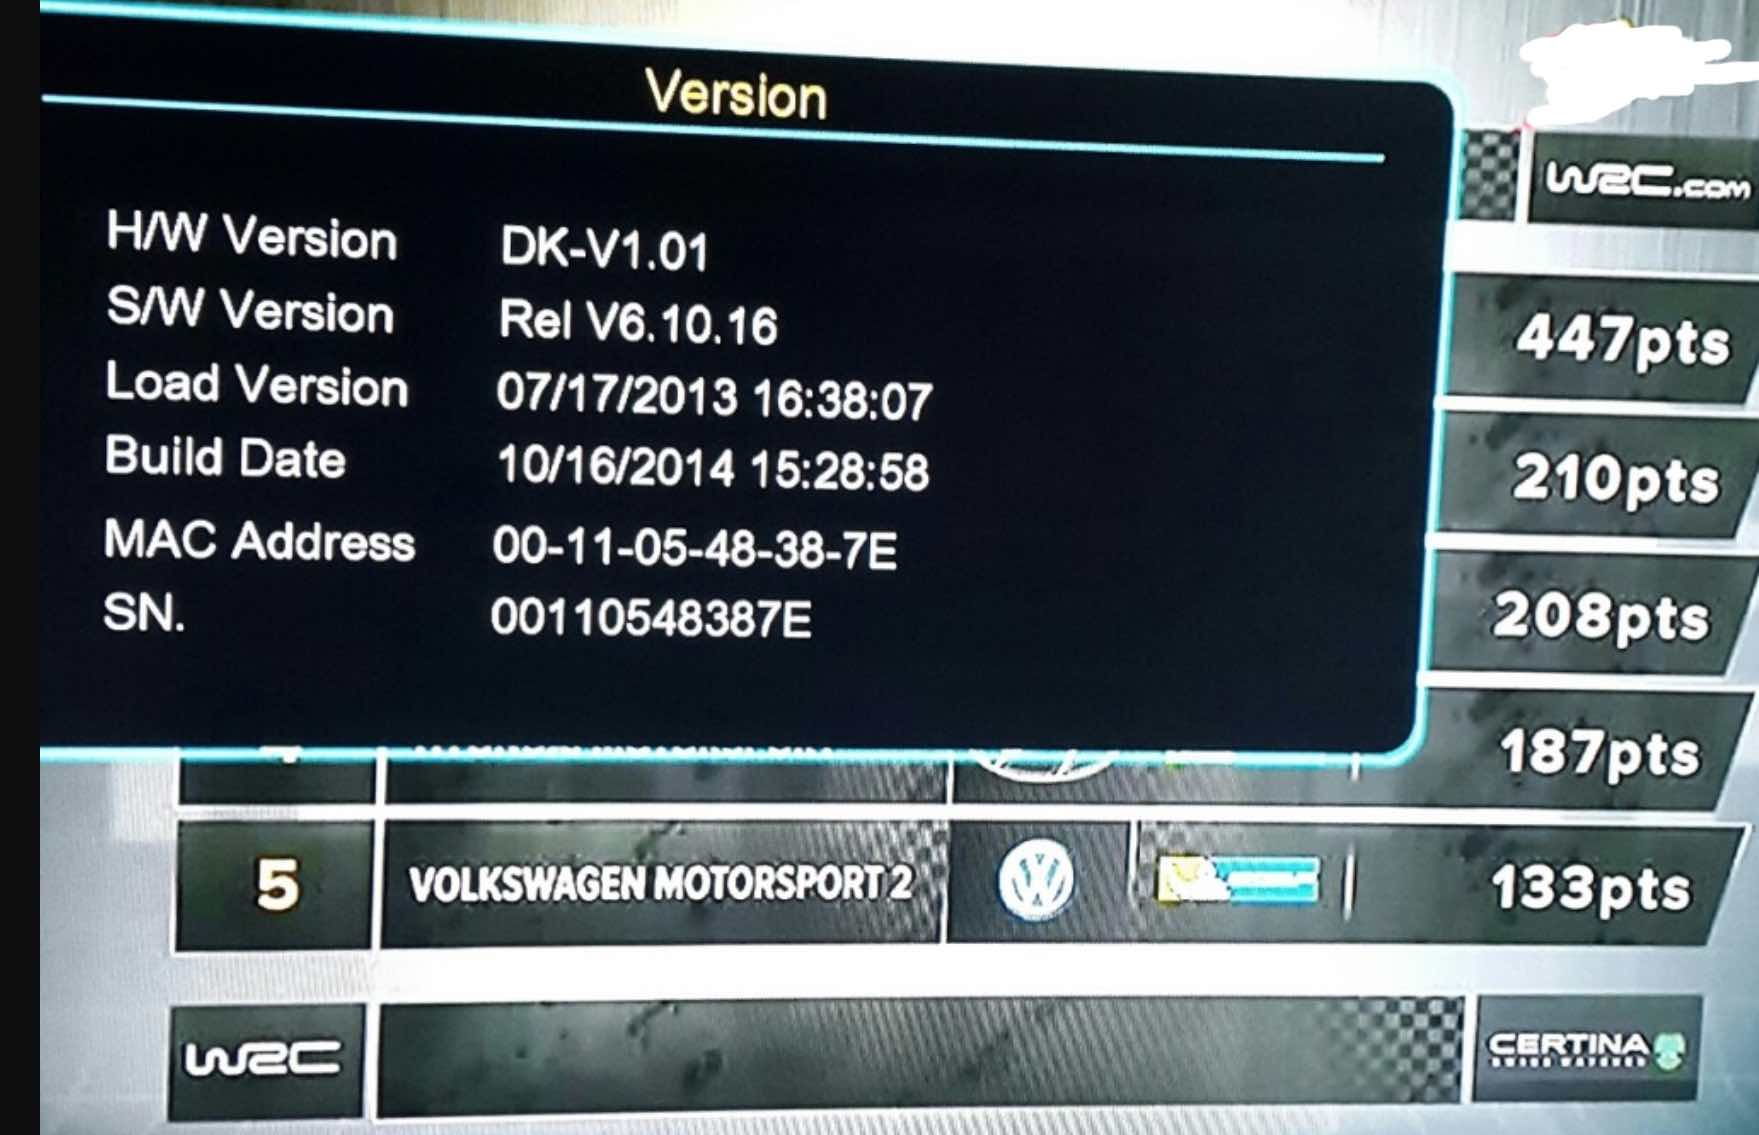 Fix Qsat Download From TS Error as a result of bad Software Upgrade